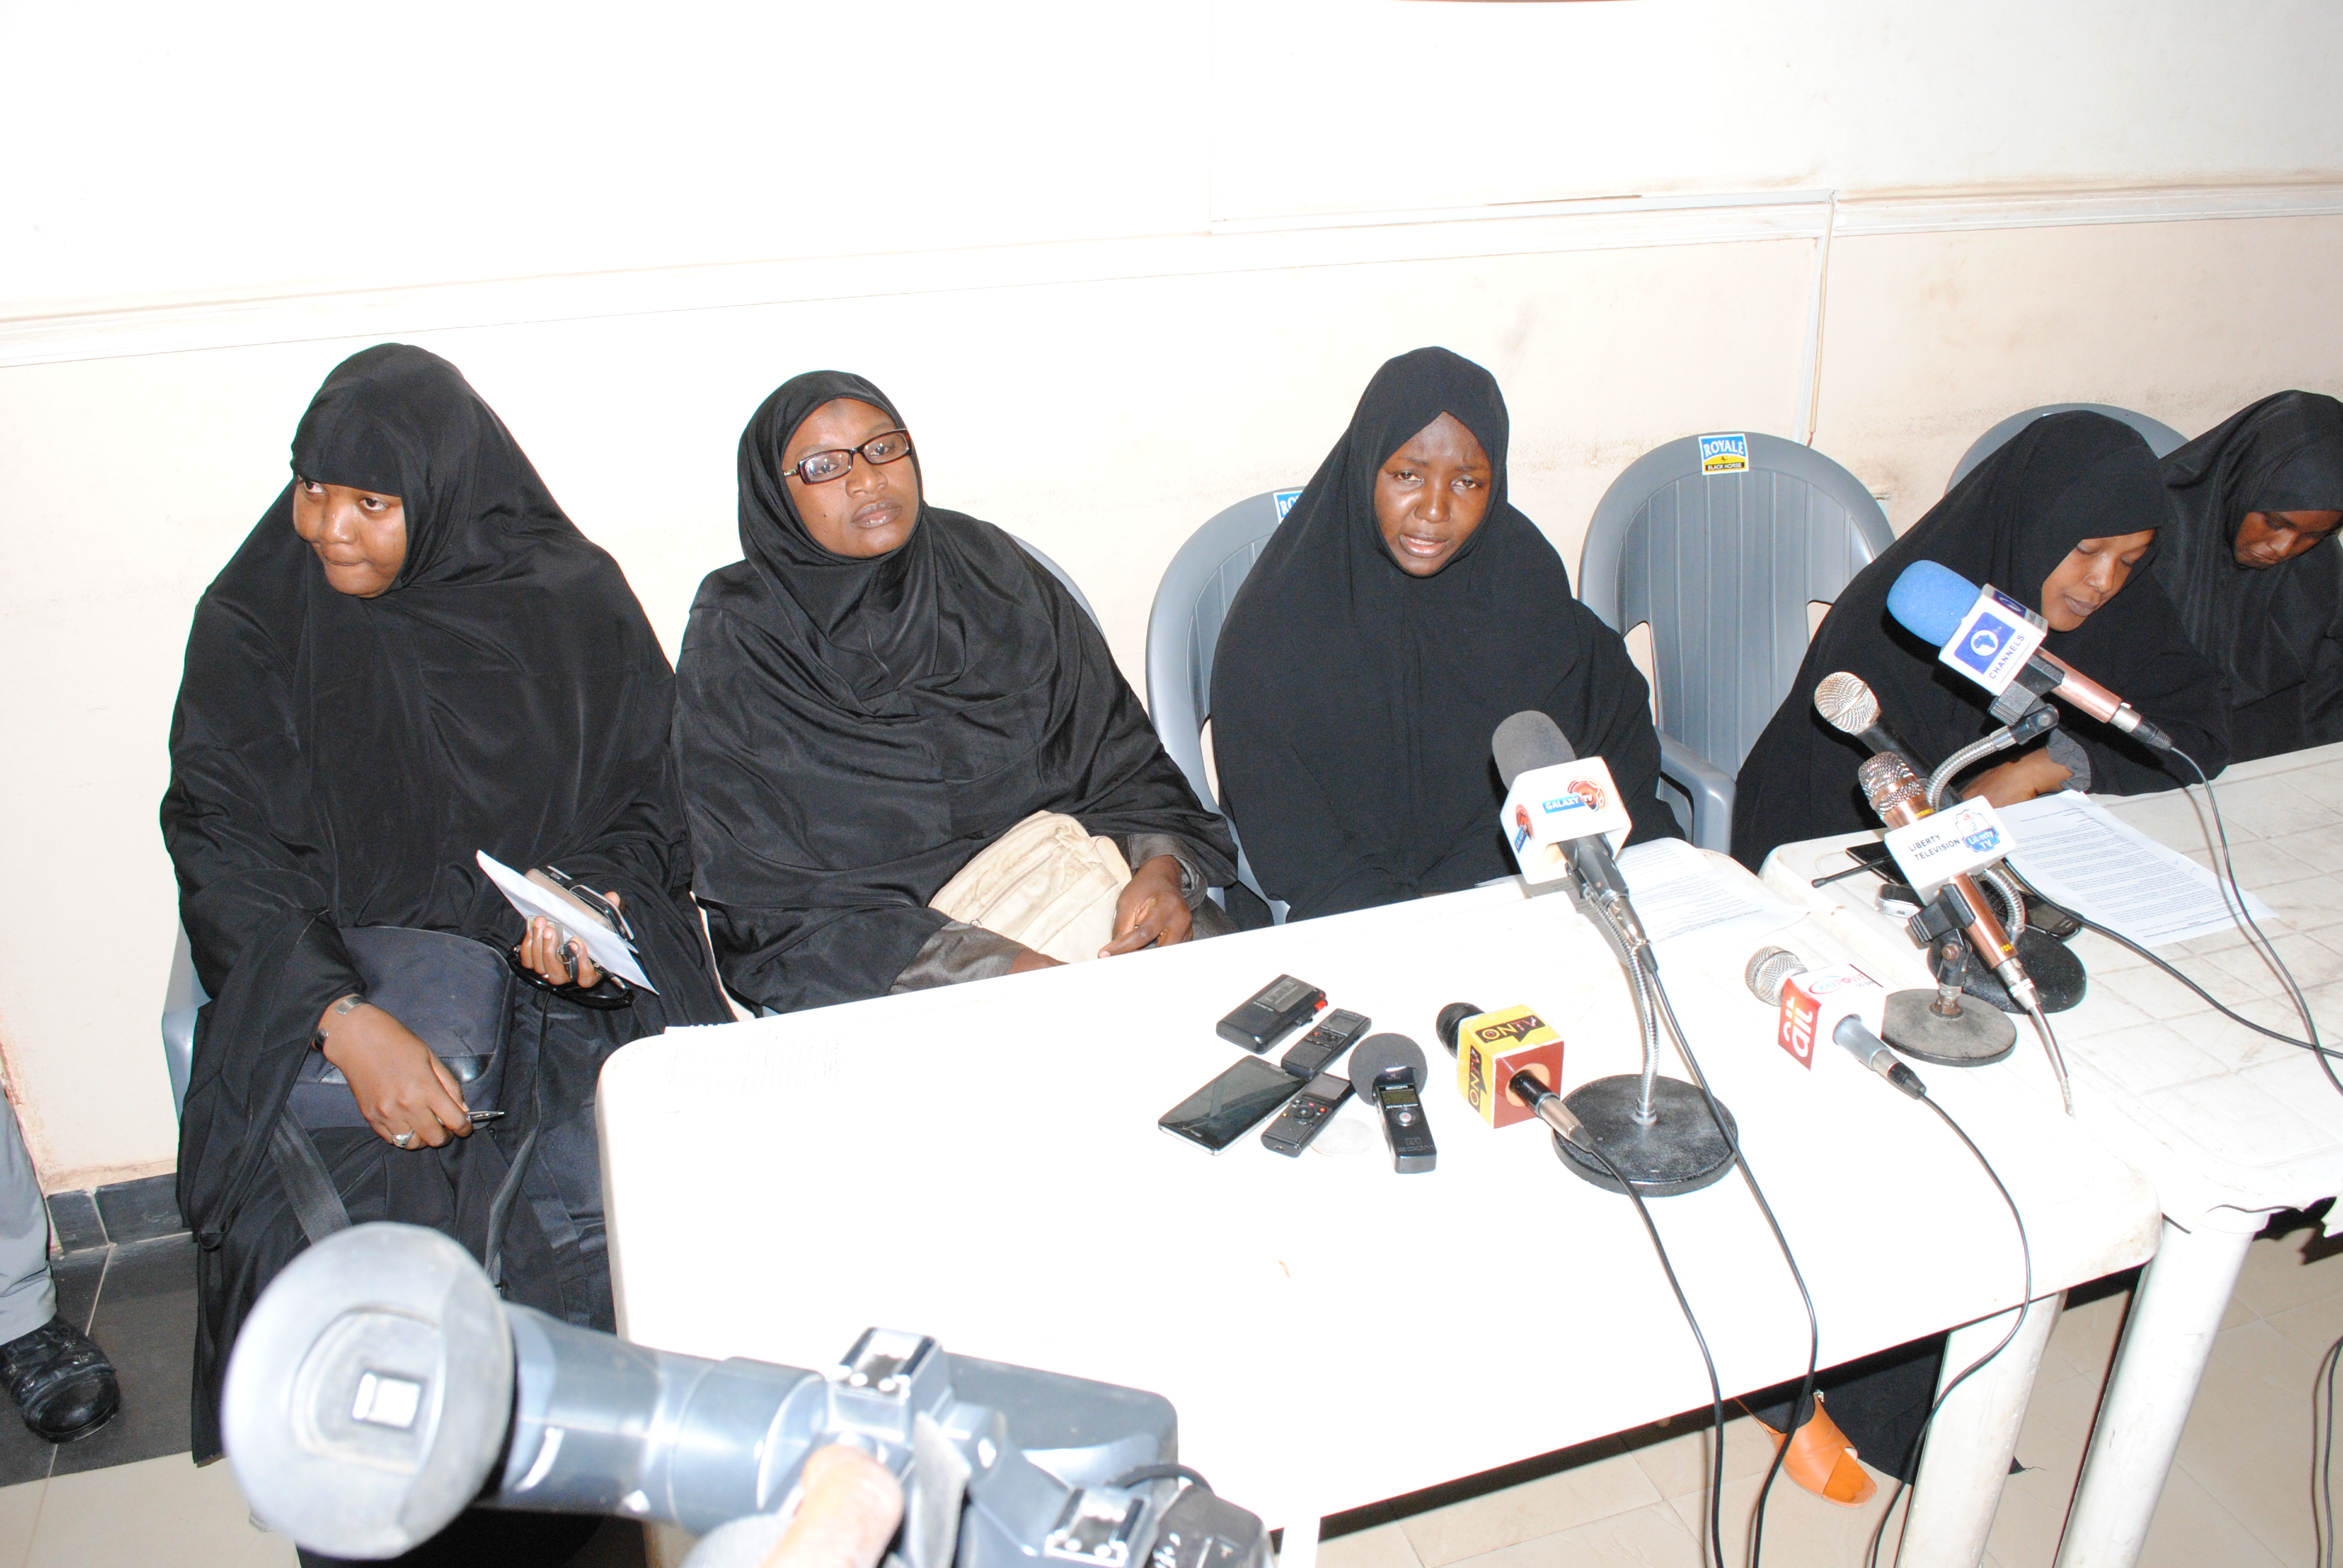 Nigeria: Women Group Calls For Unconditional Release Of Shi'ite Leader, Wife And Other Members